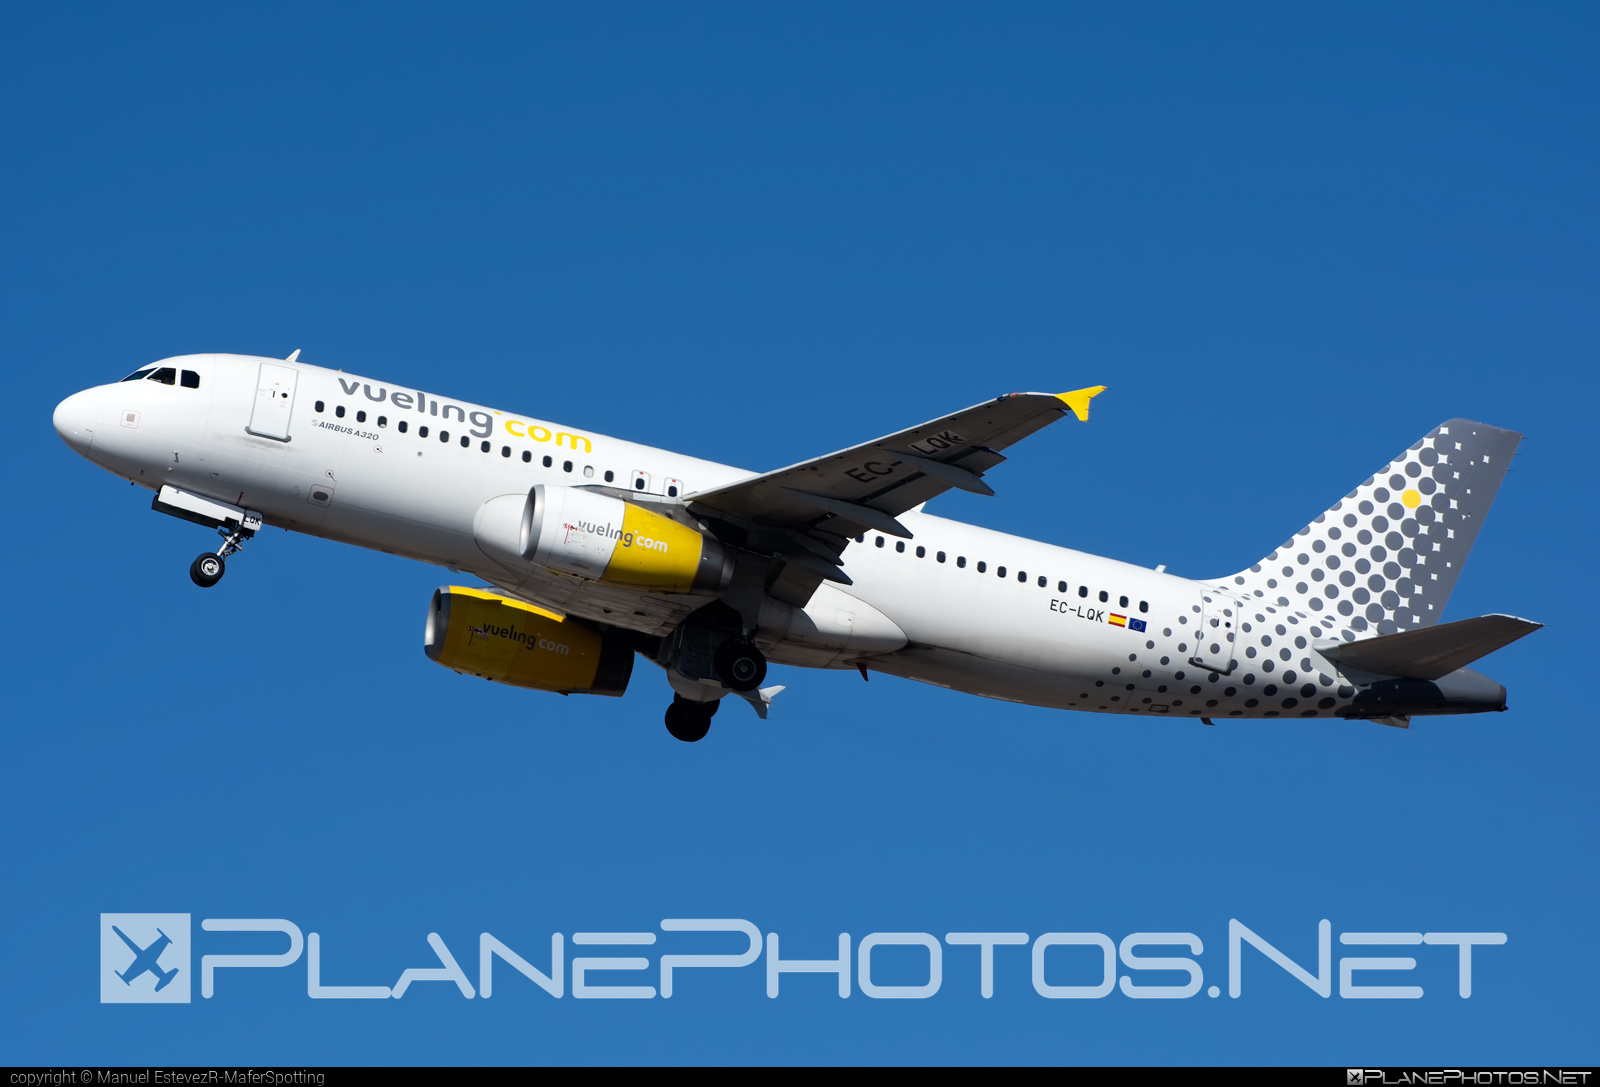 Vueling Airlines Airbus A320-232 - EC-LQK #a320 #a320family #airbus #airbus320 #vueling #vuelingairlines